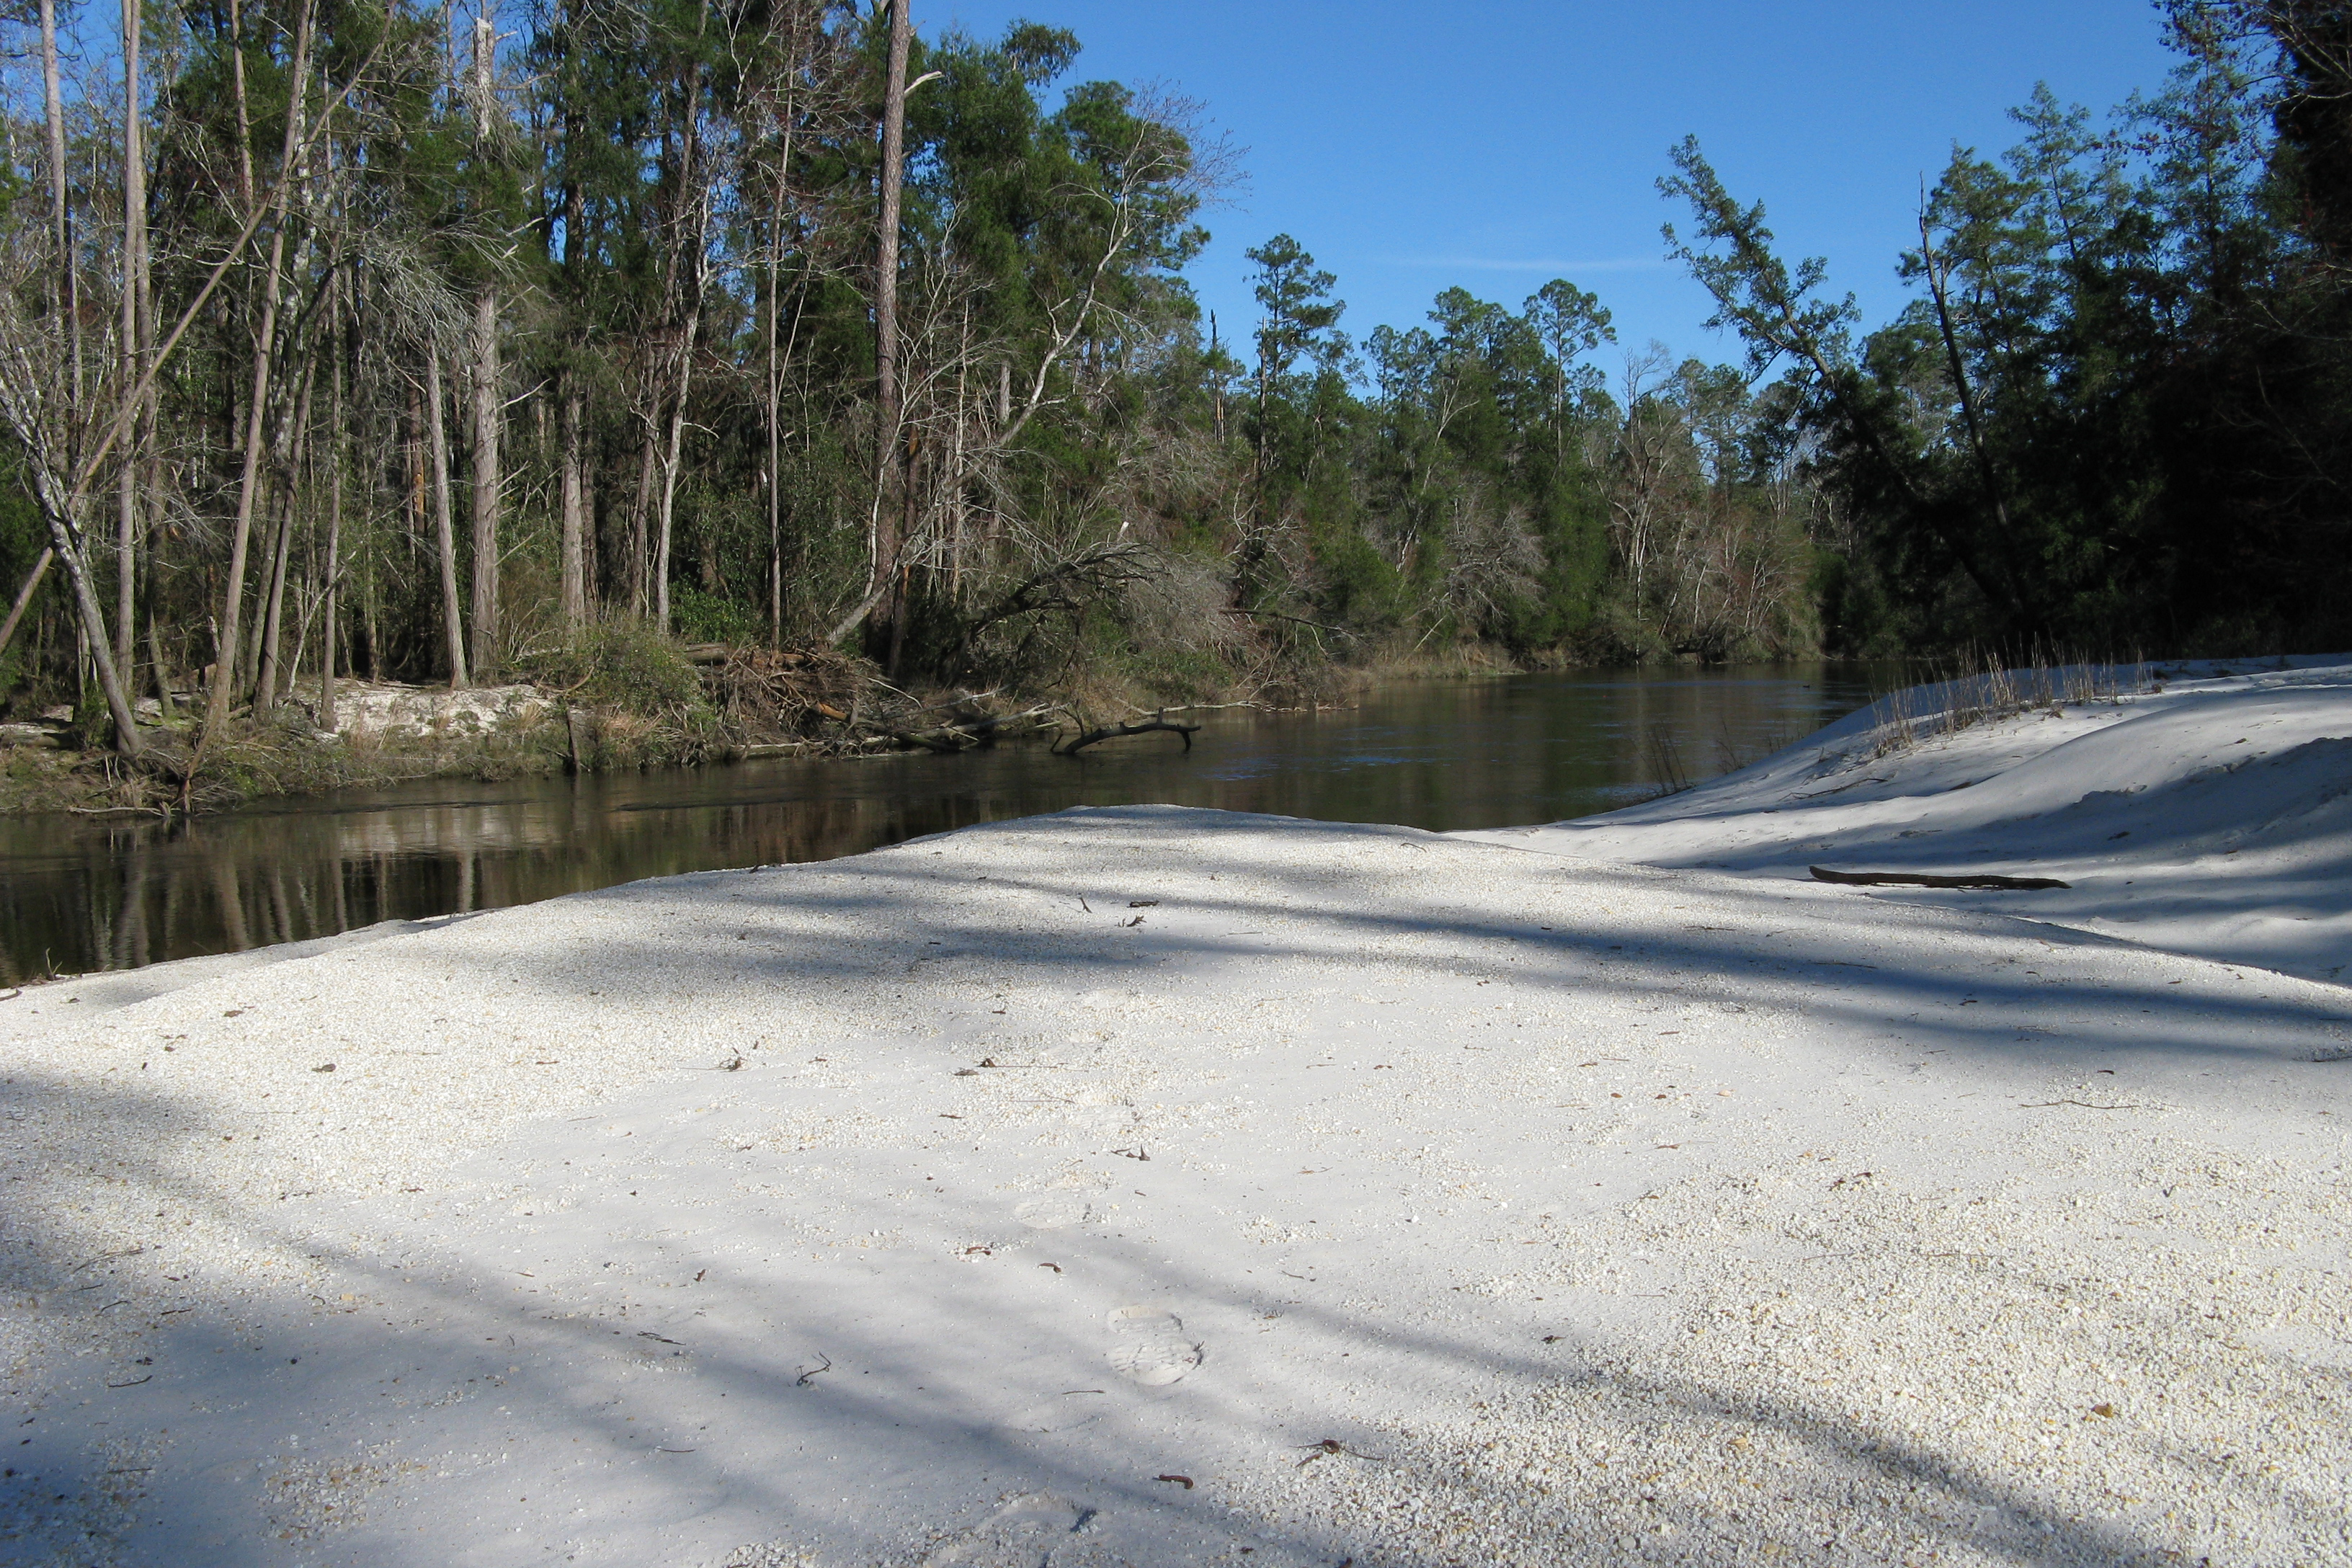 A sandy beach along the Perdido River in Alabama. Trees line the opposite bank.